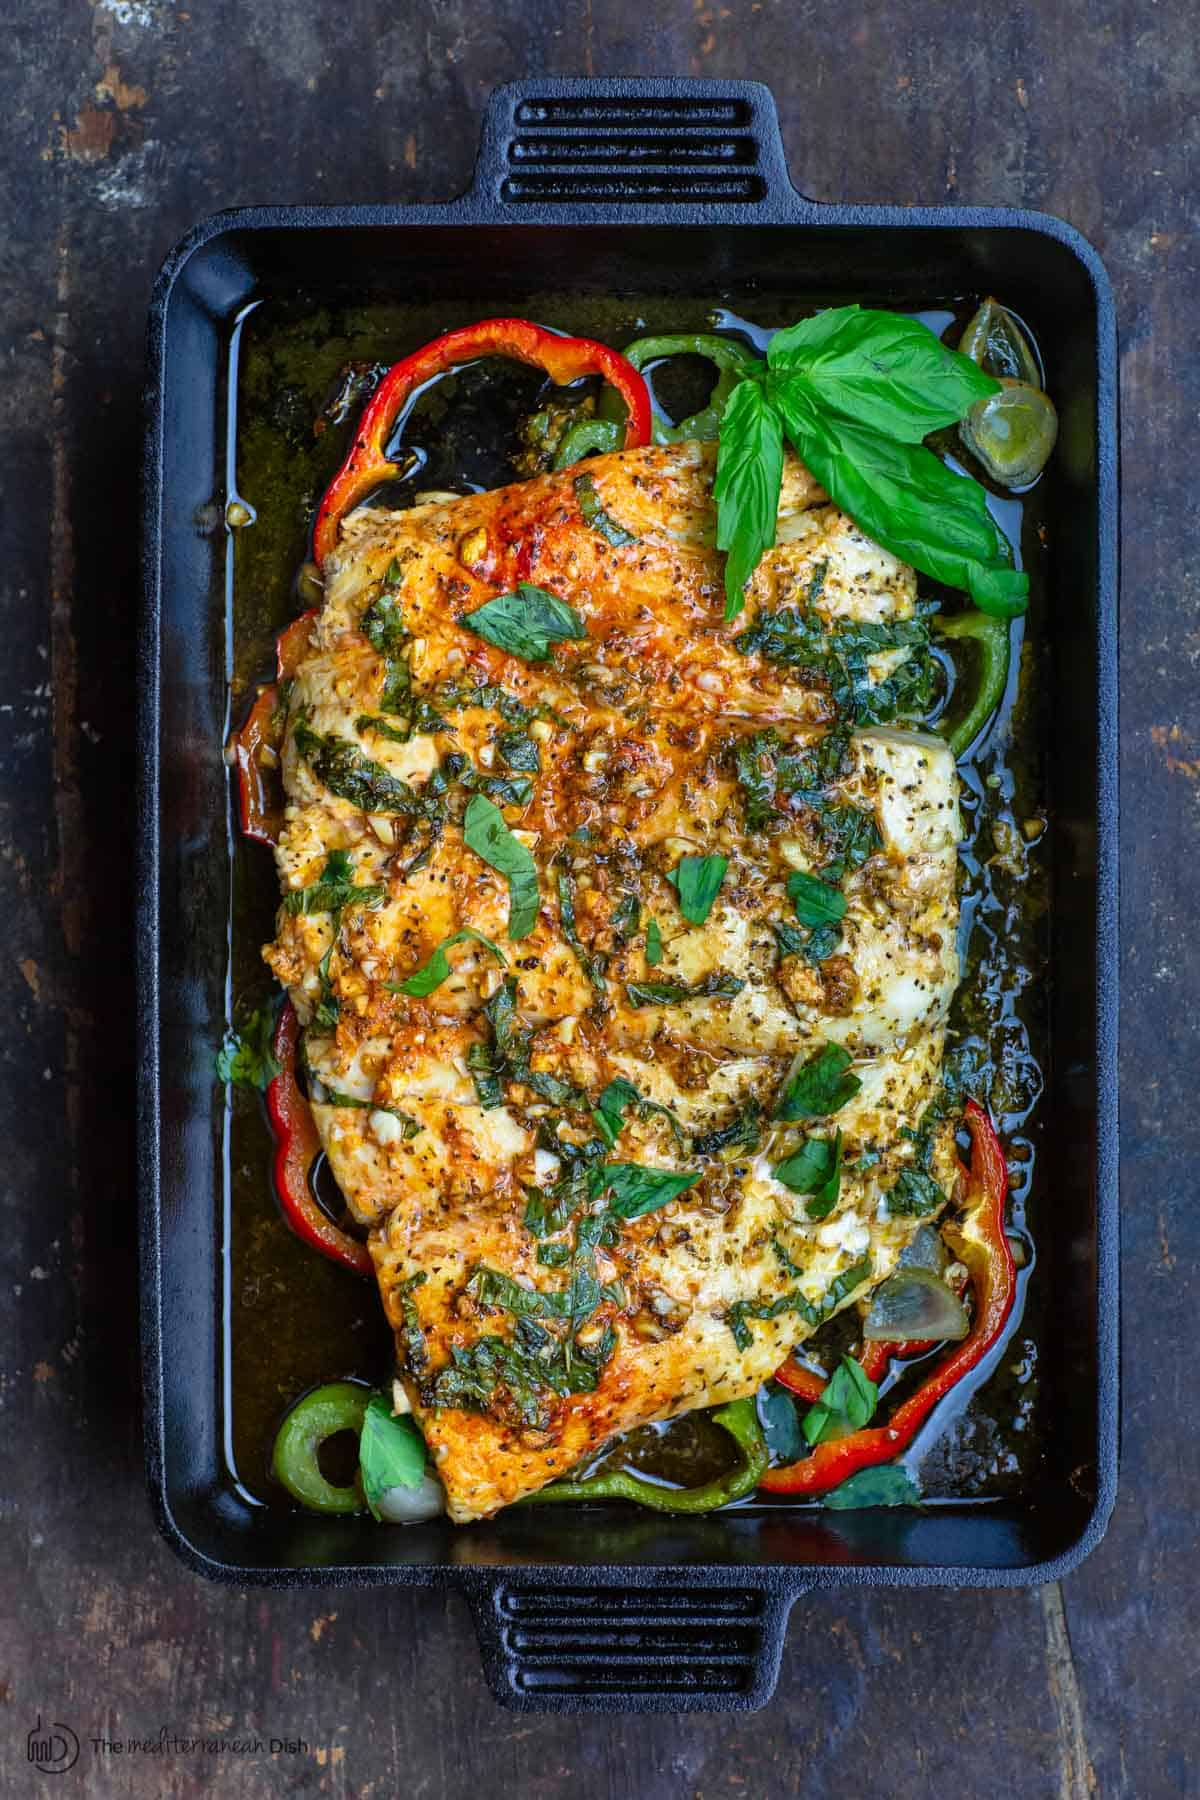 Easy Baked Fish With Garlic And Basil The Mediterranean Dish